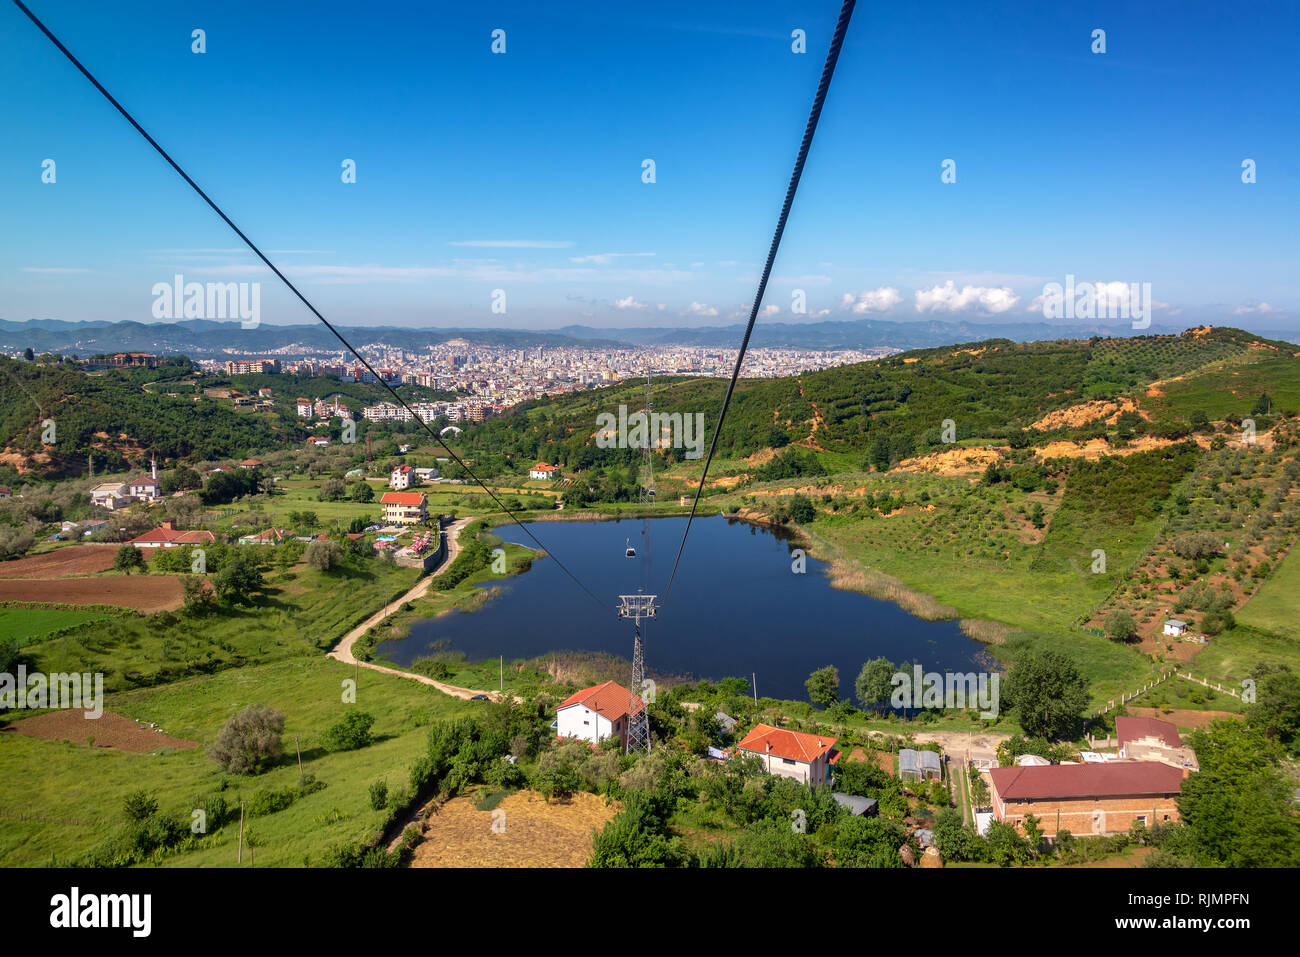 Rural landscape with Tirana, Albania in the background - Stock Image